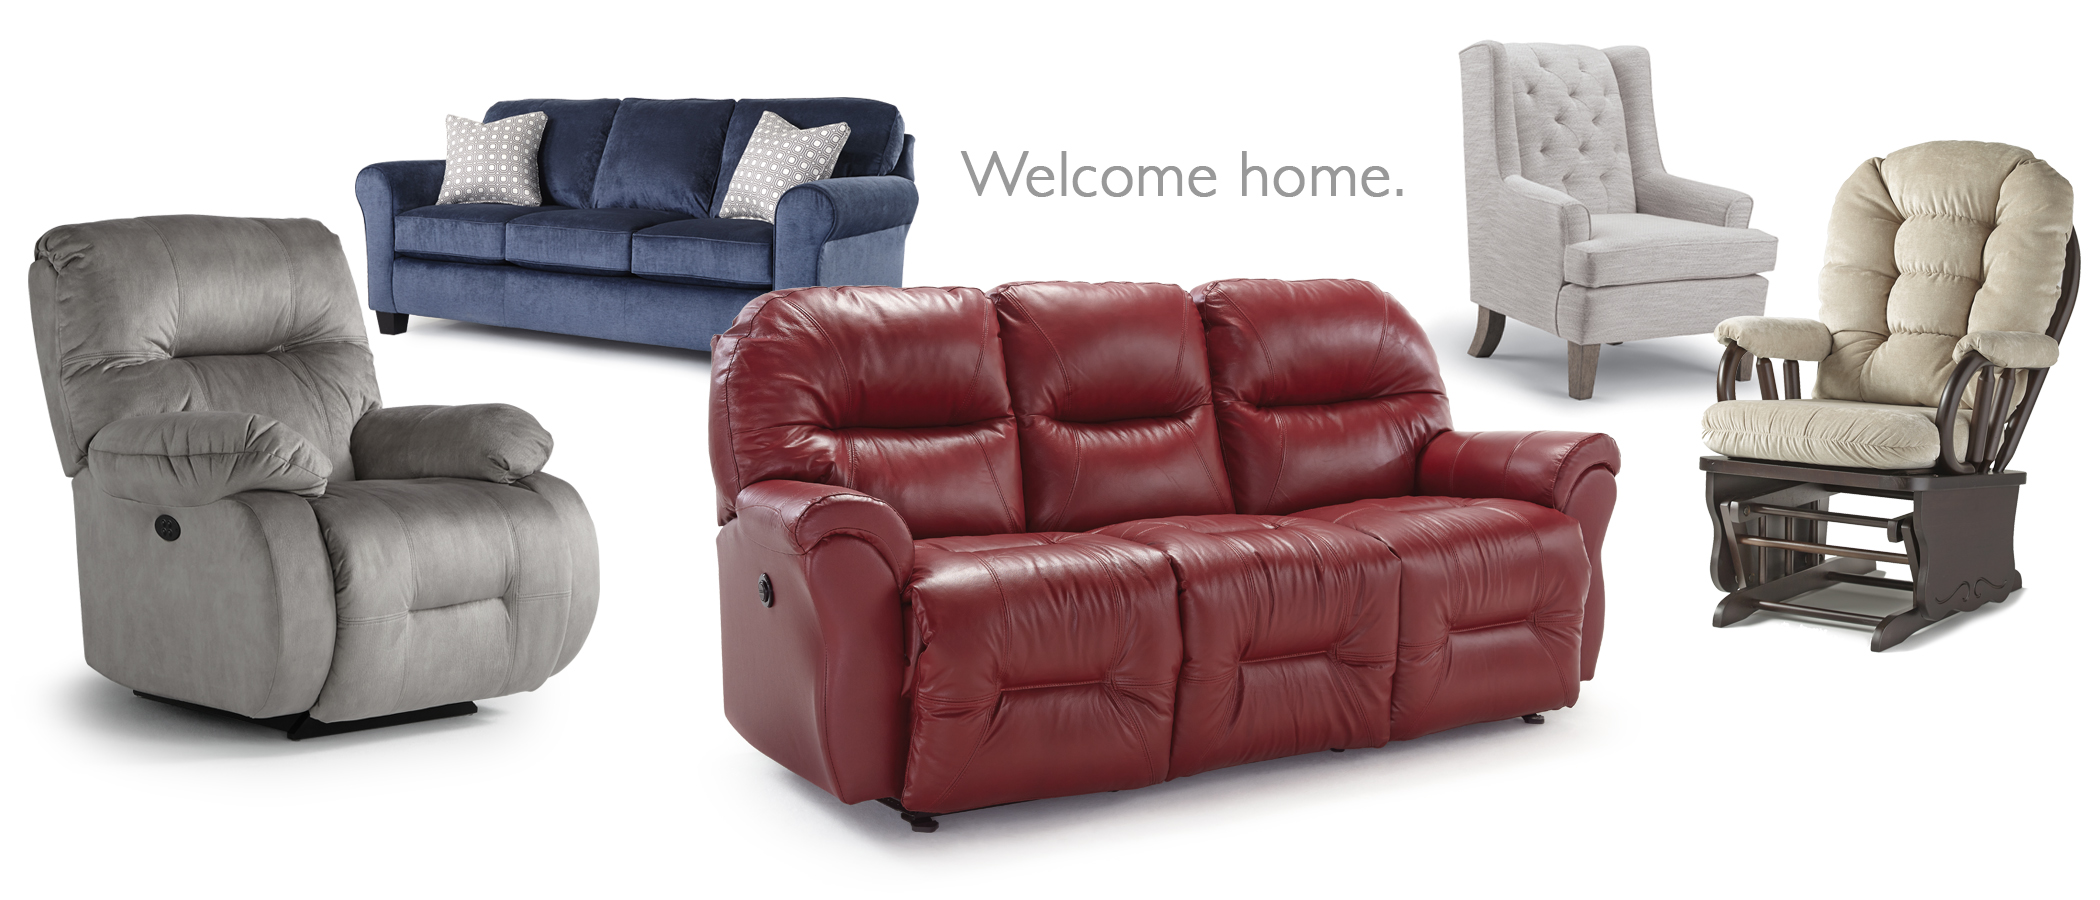 Best Furniture Sofa Sofa Modern Design Hot Top Grain Leather Sofas Corner Couches Thesofa